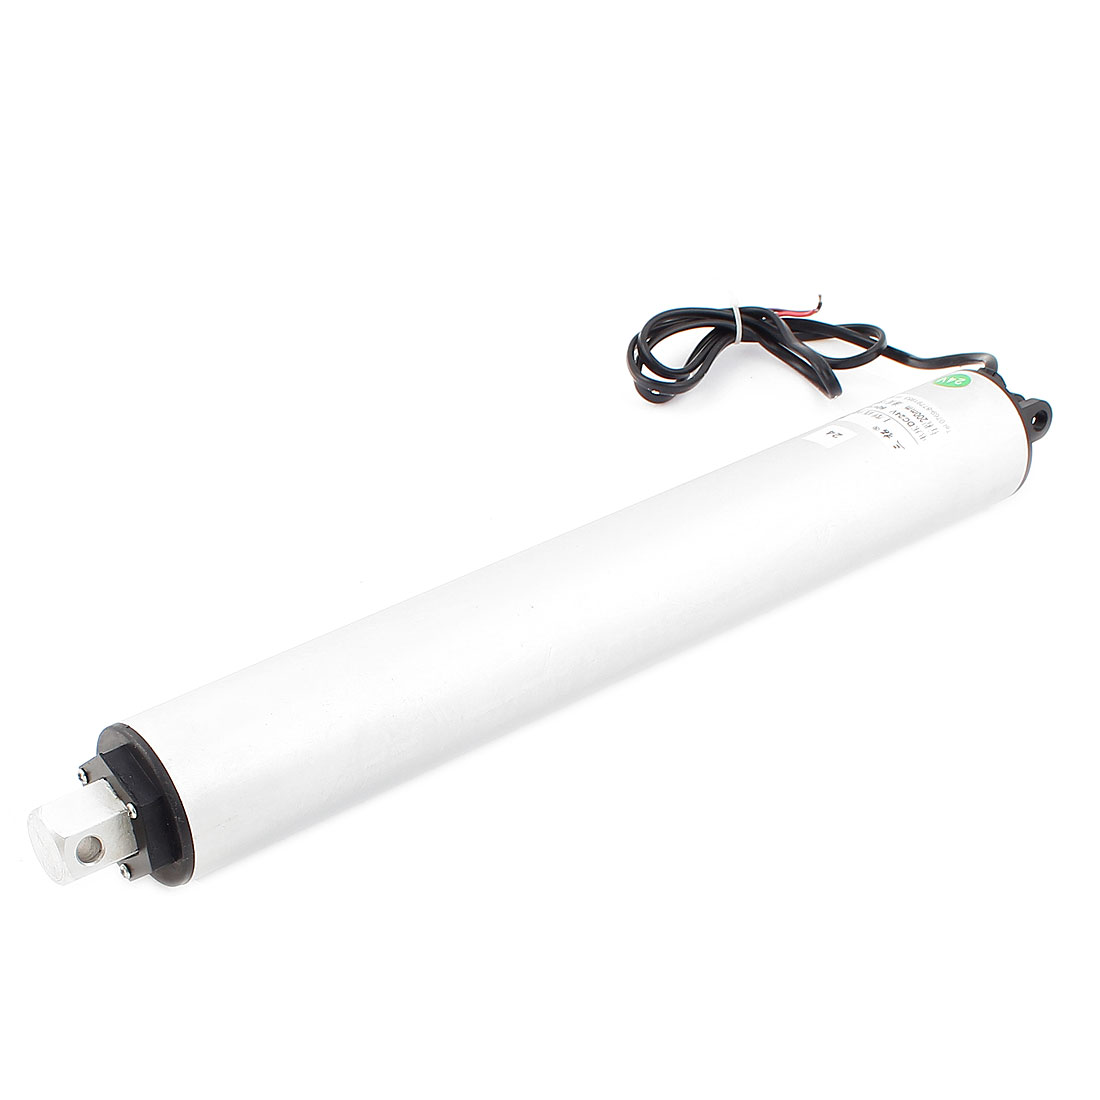 24V DC 200mm 8 Inches Stroke Force 120N Electric Tubular Linear Actuator Motor High Speed 130mm/s